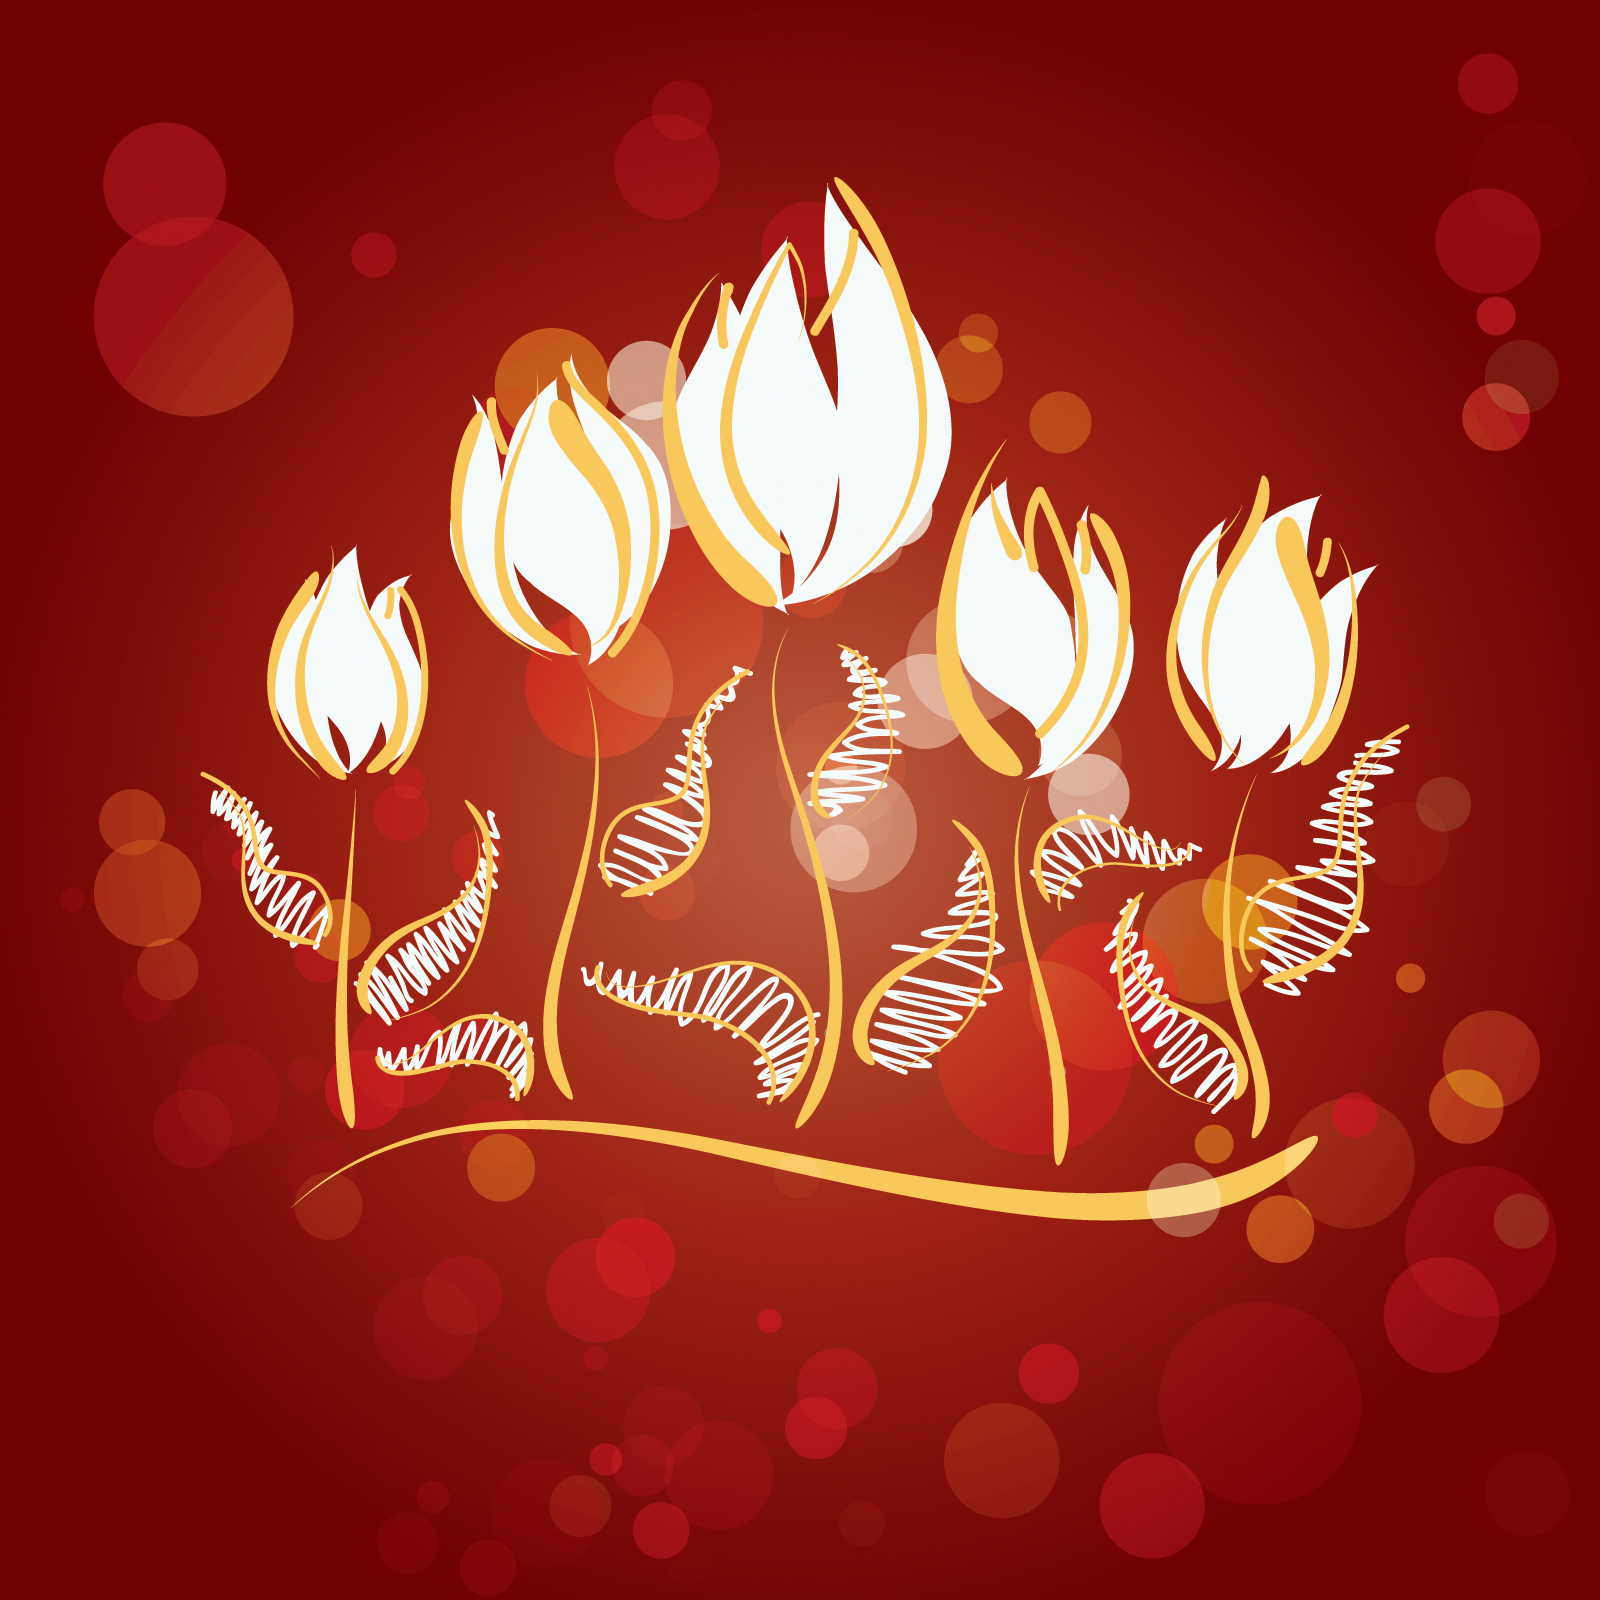 Fire Flowers Design PPT Templates